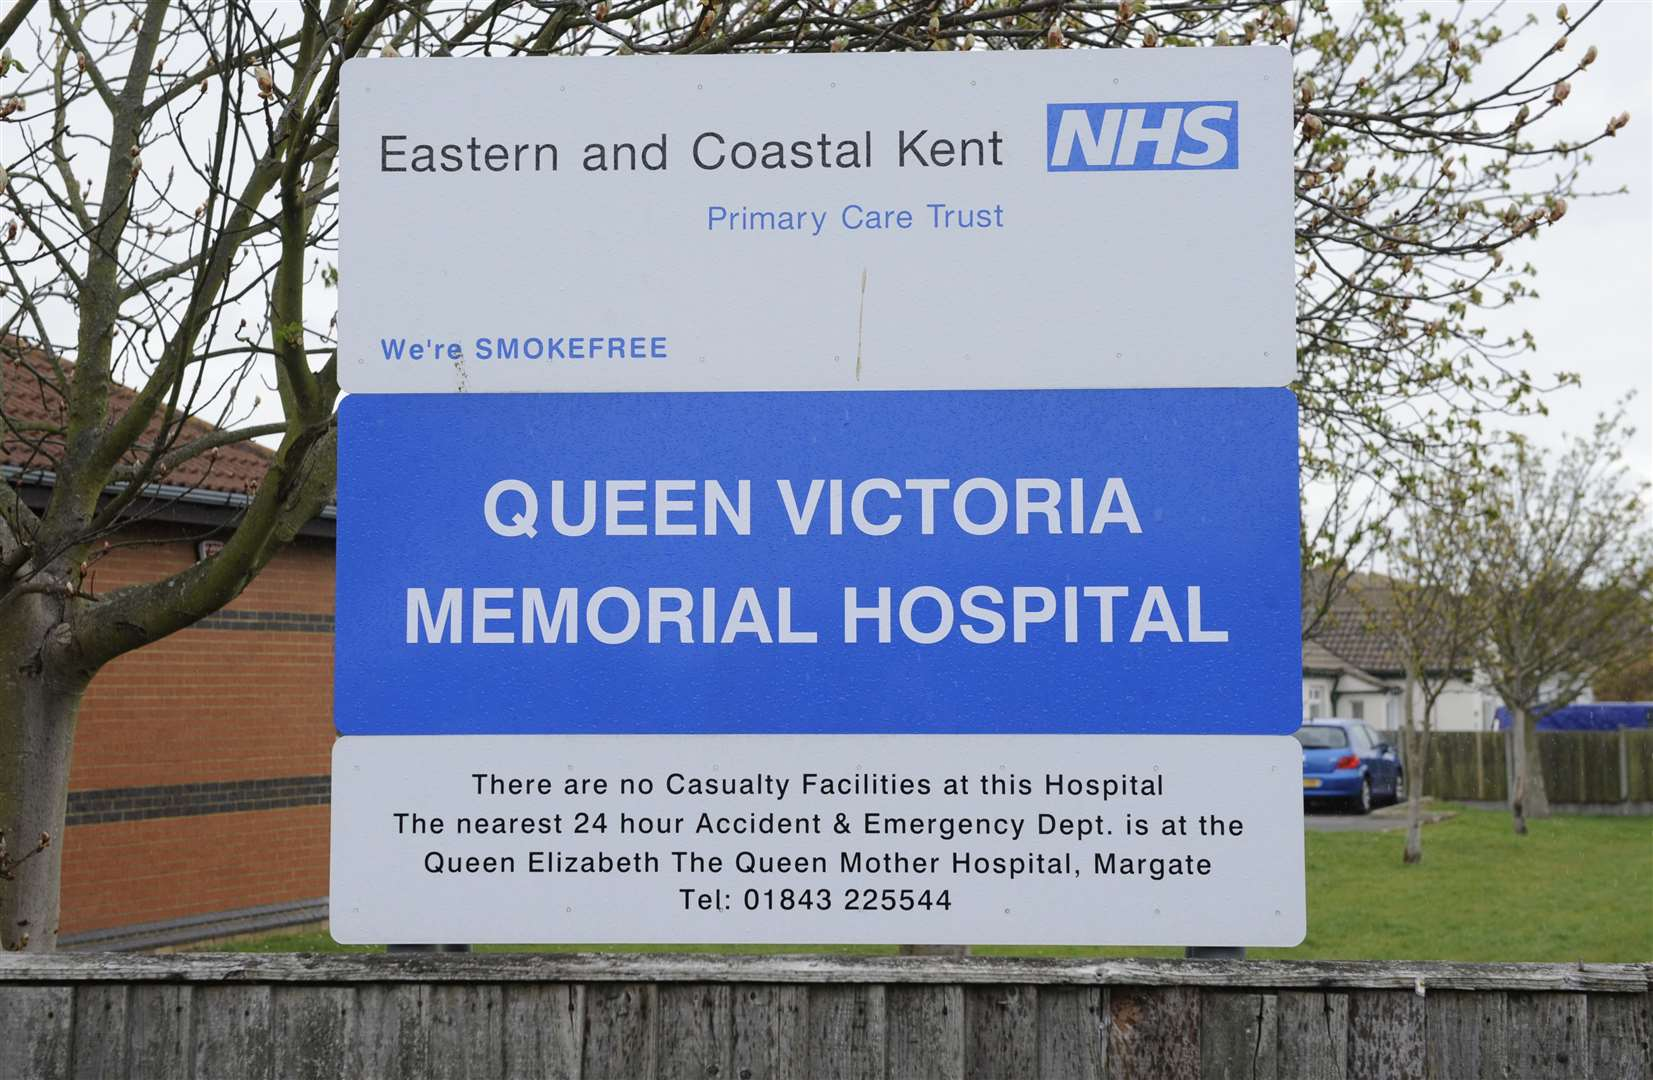 Queen Victoria Hospital, King Edward Avenue, Herne Bay